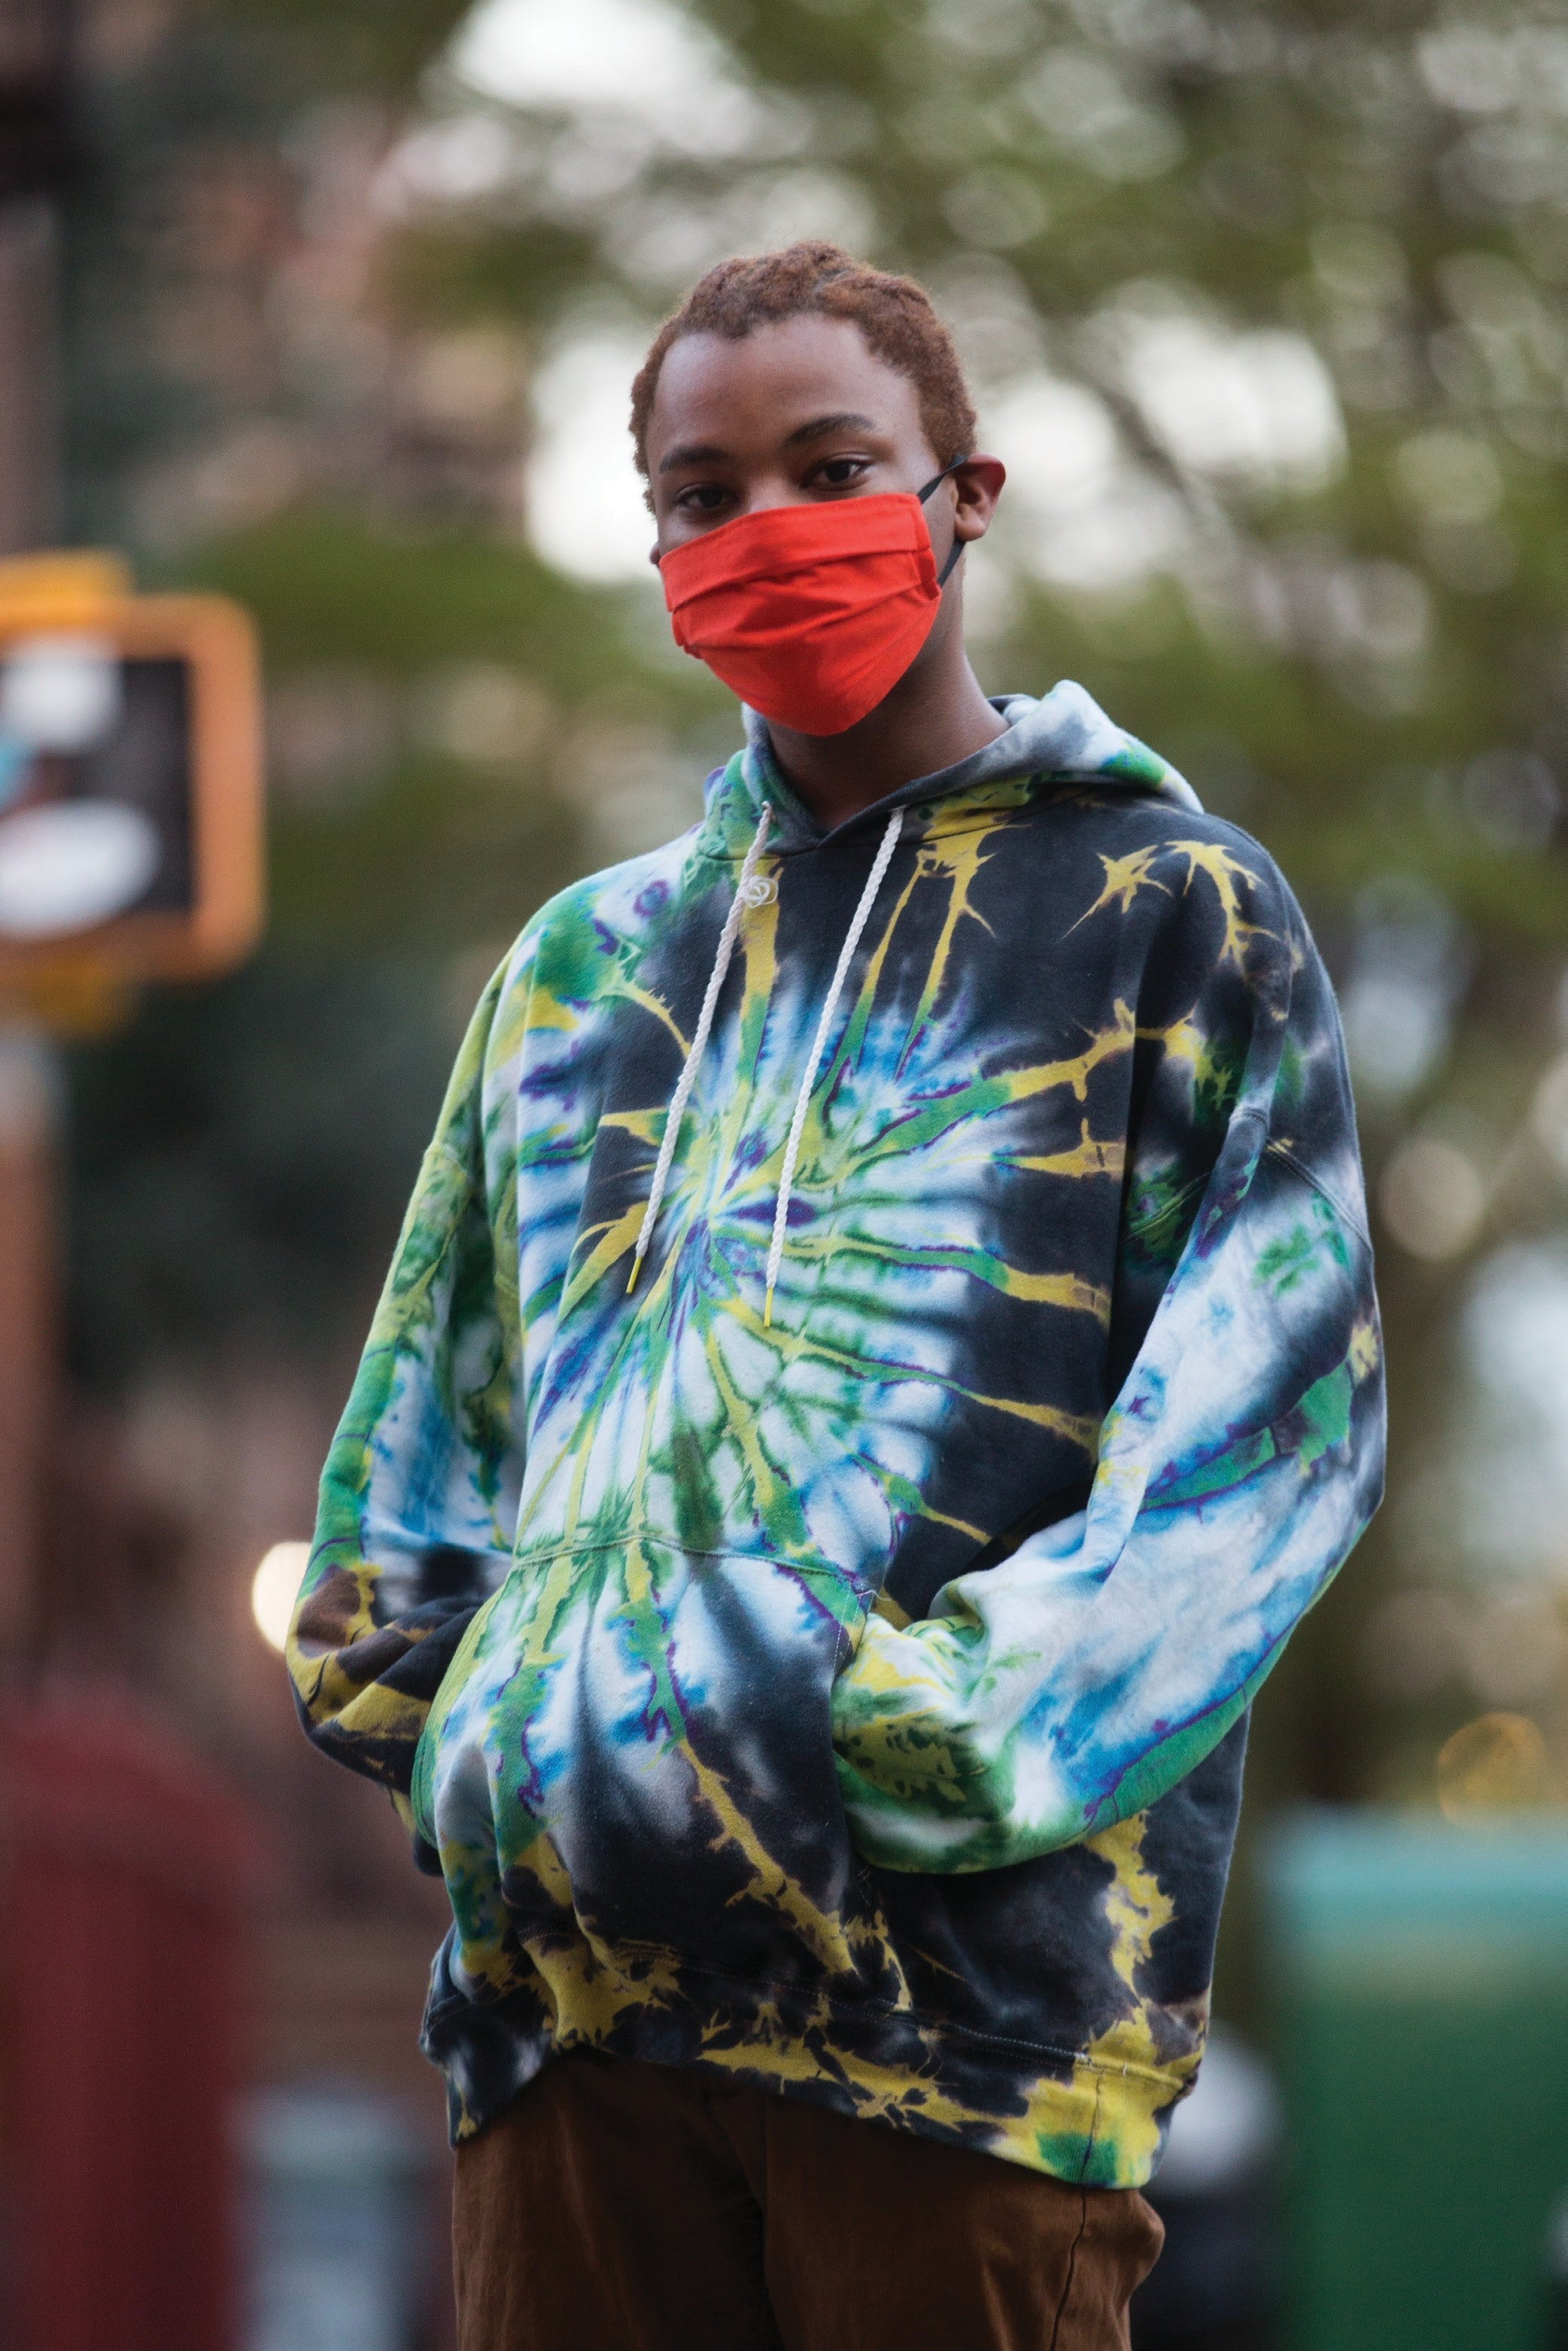 a boy wearing a red face mask